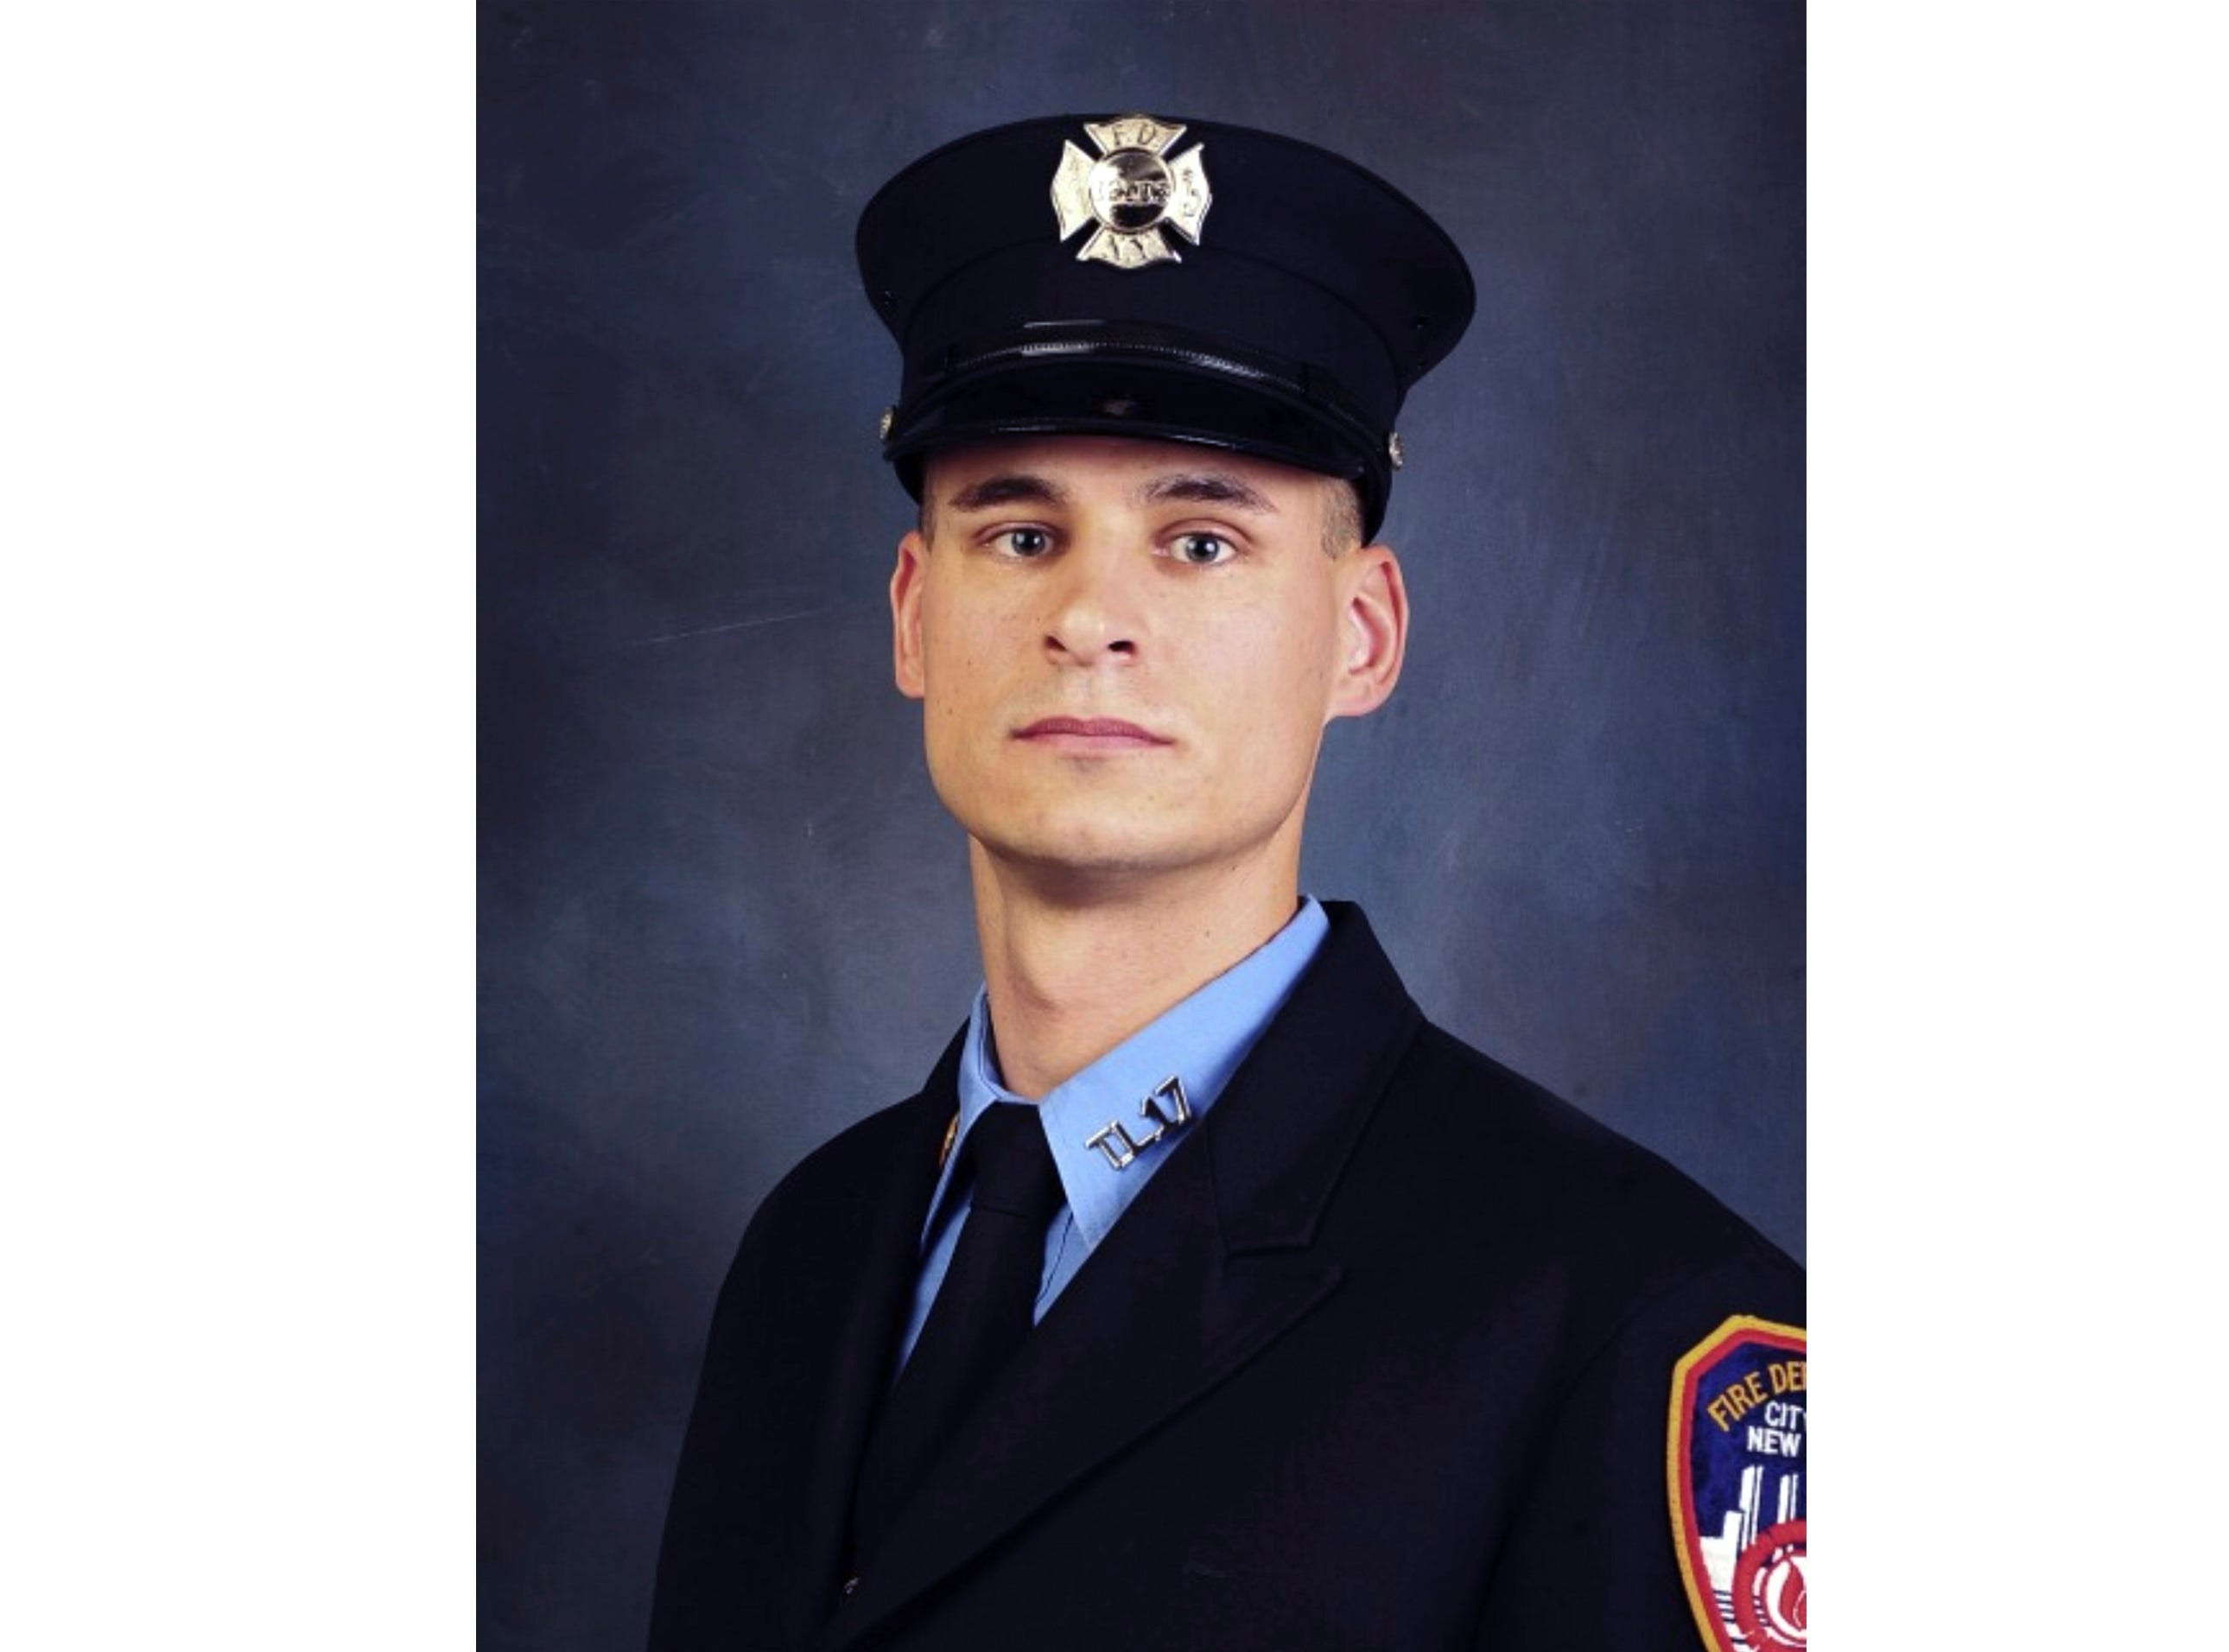 This undated photo, provided in New York, Tuesday April 9, 2019, shows Fire Department of New York firefighter Christopher Slutman. Slutman, a 15-year member of the Fire Dept. of New York, was among three American service members killed by a roadside bomb in Afghanistan on Monday.